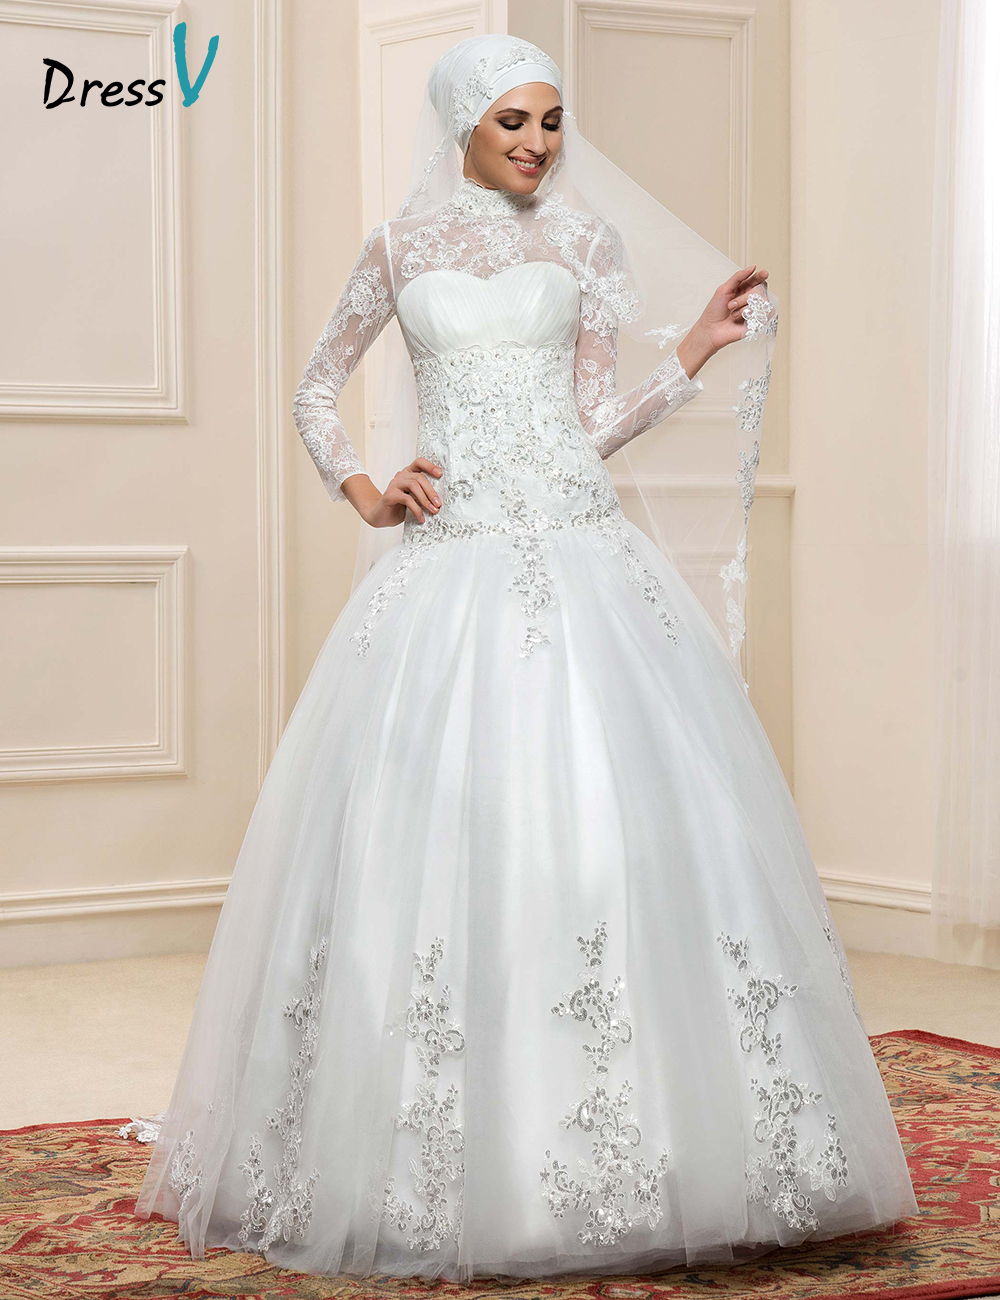 Long sleeve muslim turtleneck wedding dresses ball gown 2017 hijab long sleeve muslim turtleneck wedding dresses ball gown 2017 hijab sequin lace applique vintage dubai bridal gowns islam kaftan in wedding dresses from ombrellifo Image collections